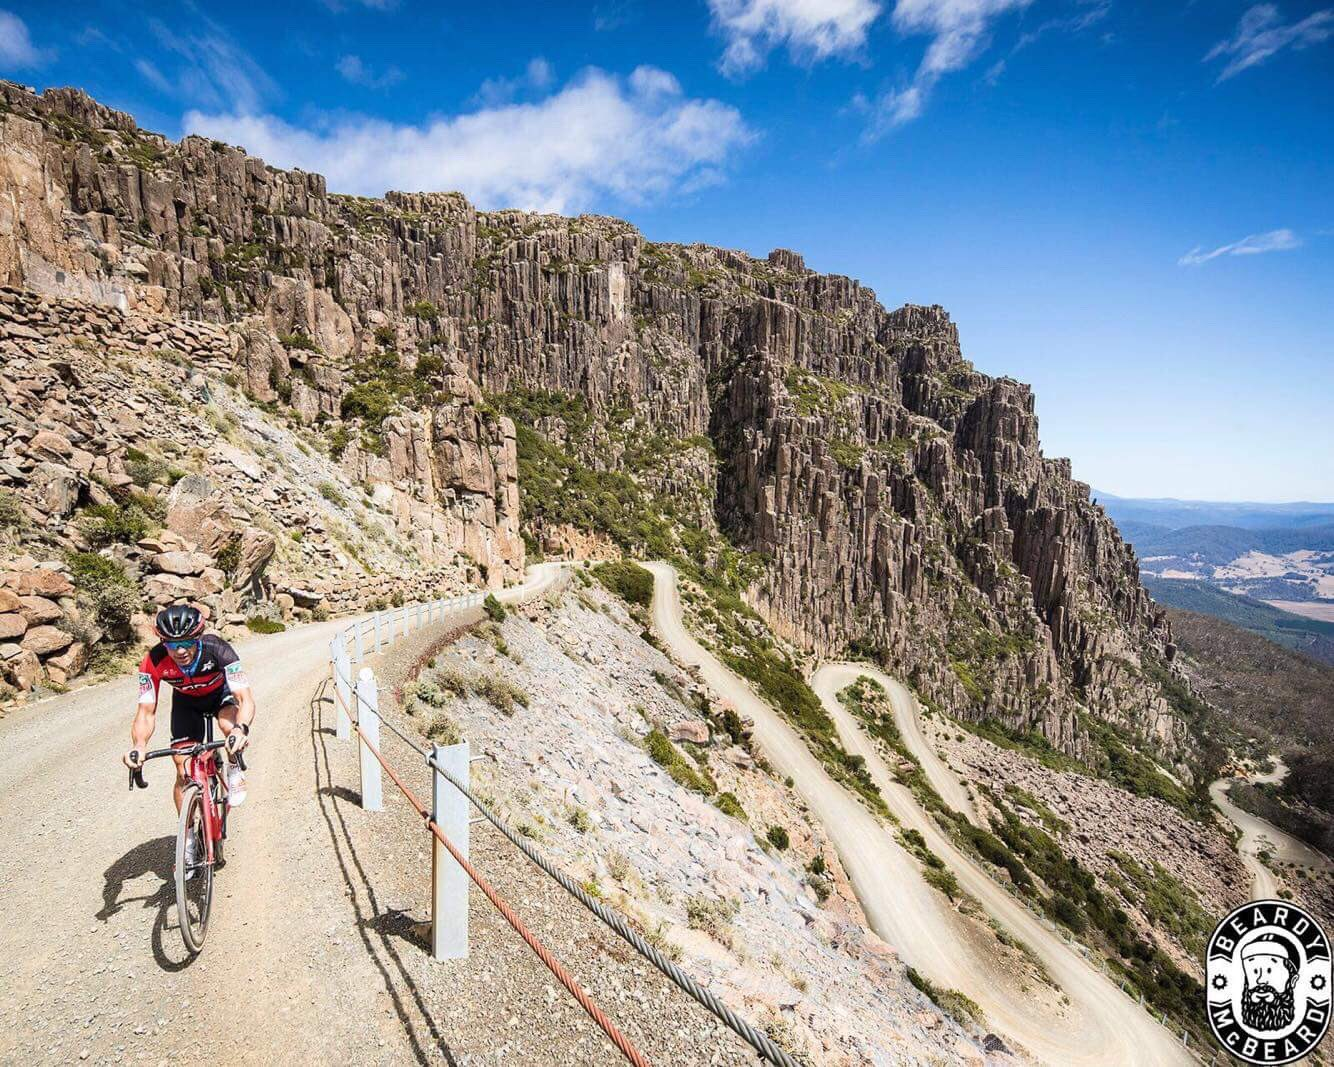 Rode up this beast yesterday, one of the best climbs I've ever done. Tassie roads never cease to amaze! #benlomond #jacobsladder #Giro 📷 @McbeardBeardy https://t.co/1cckIir331